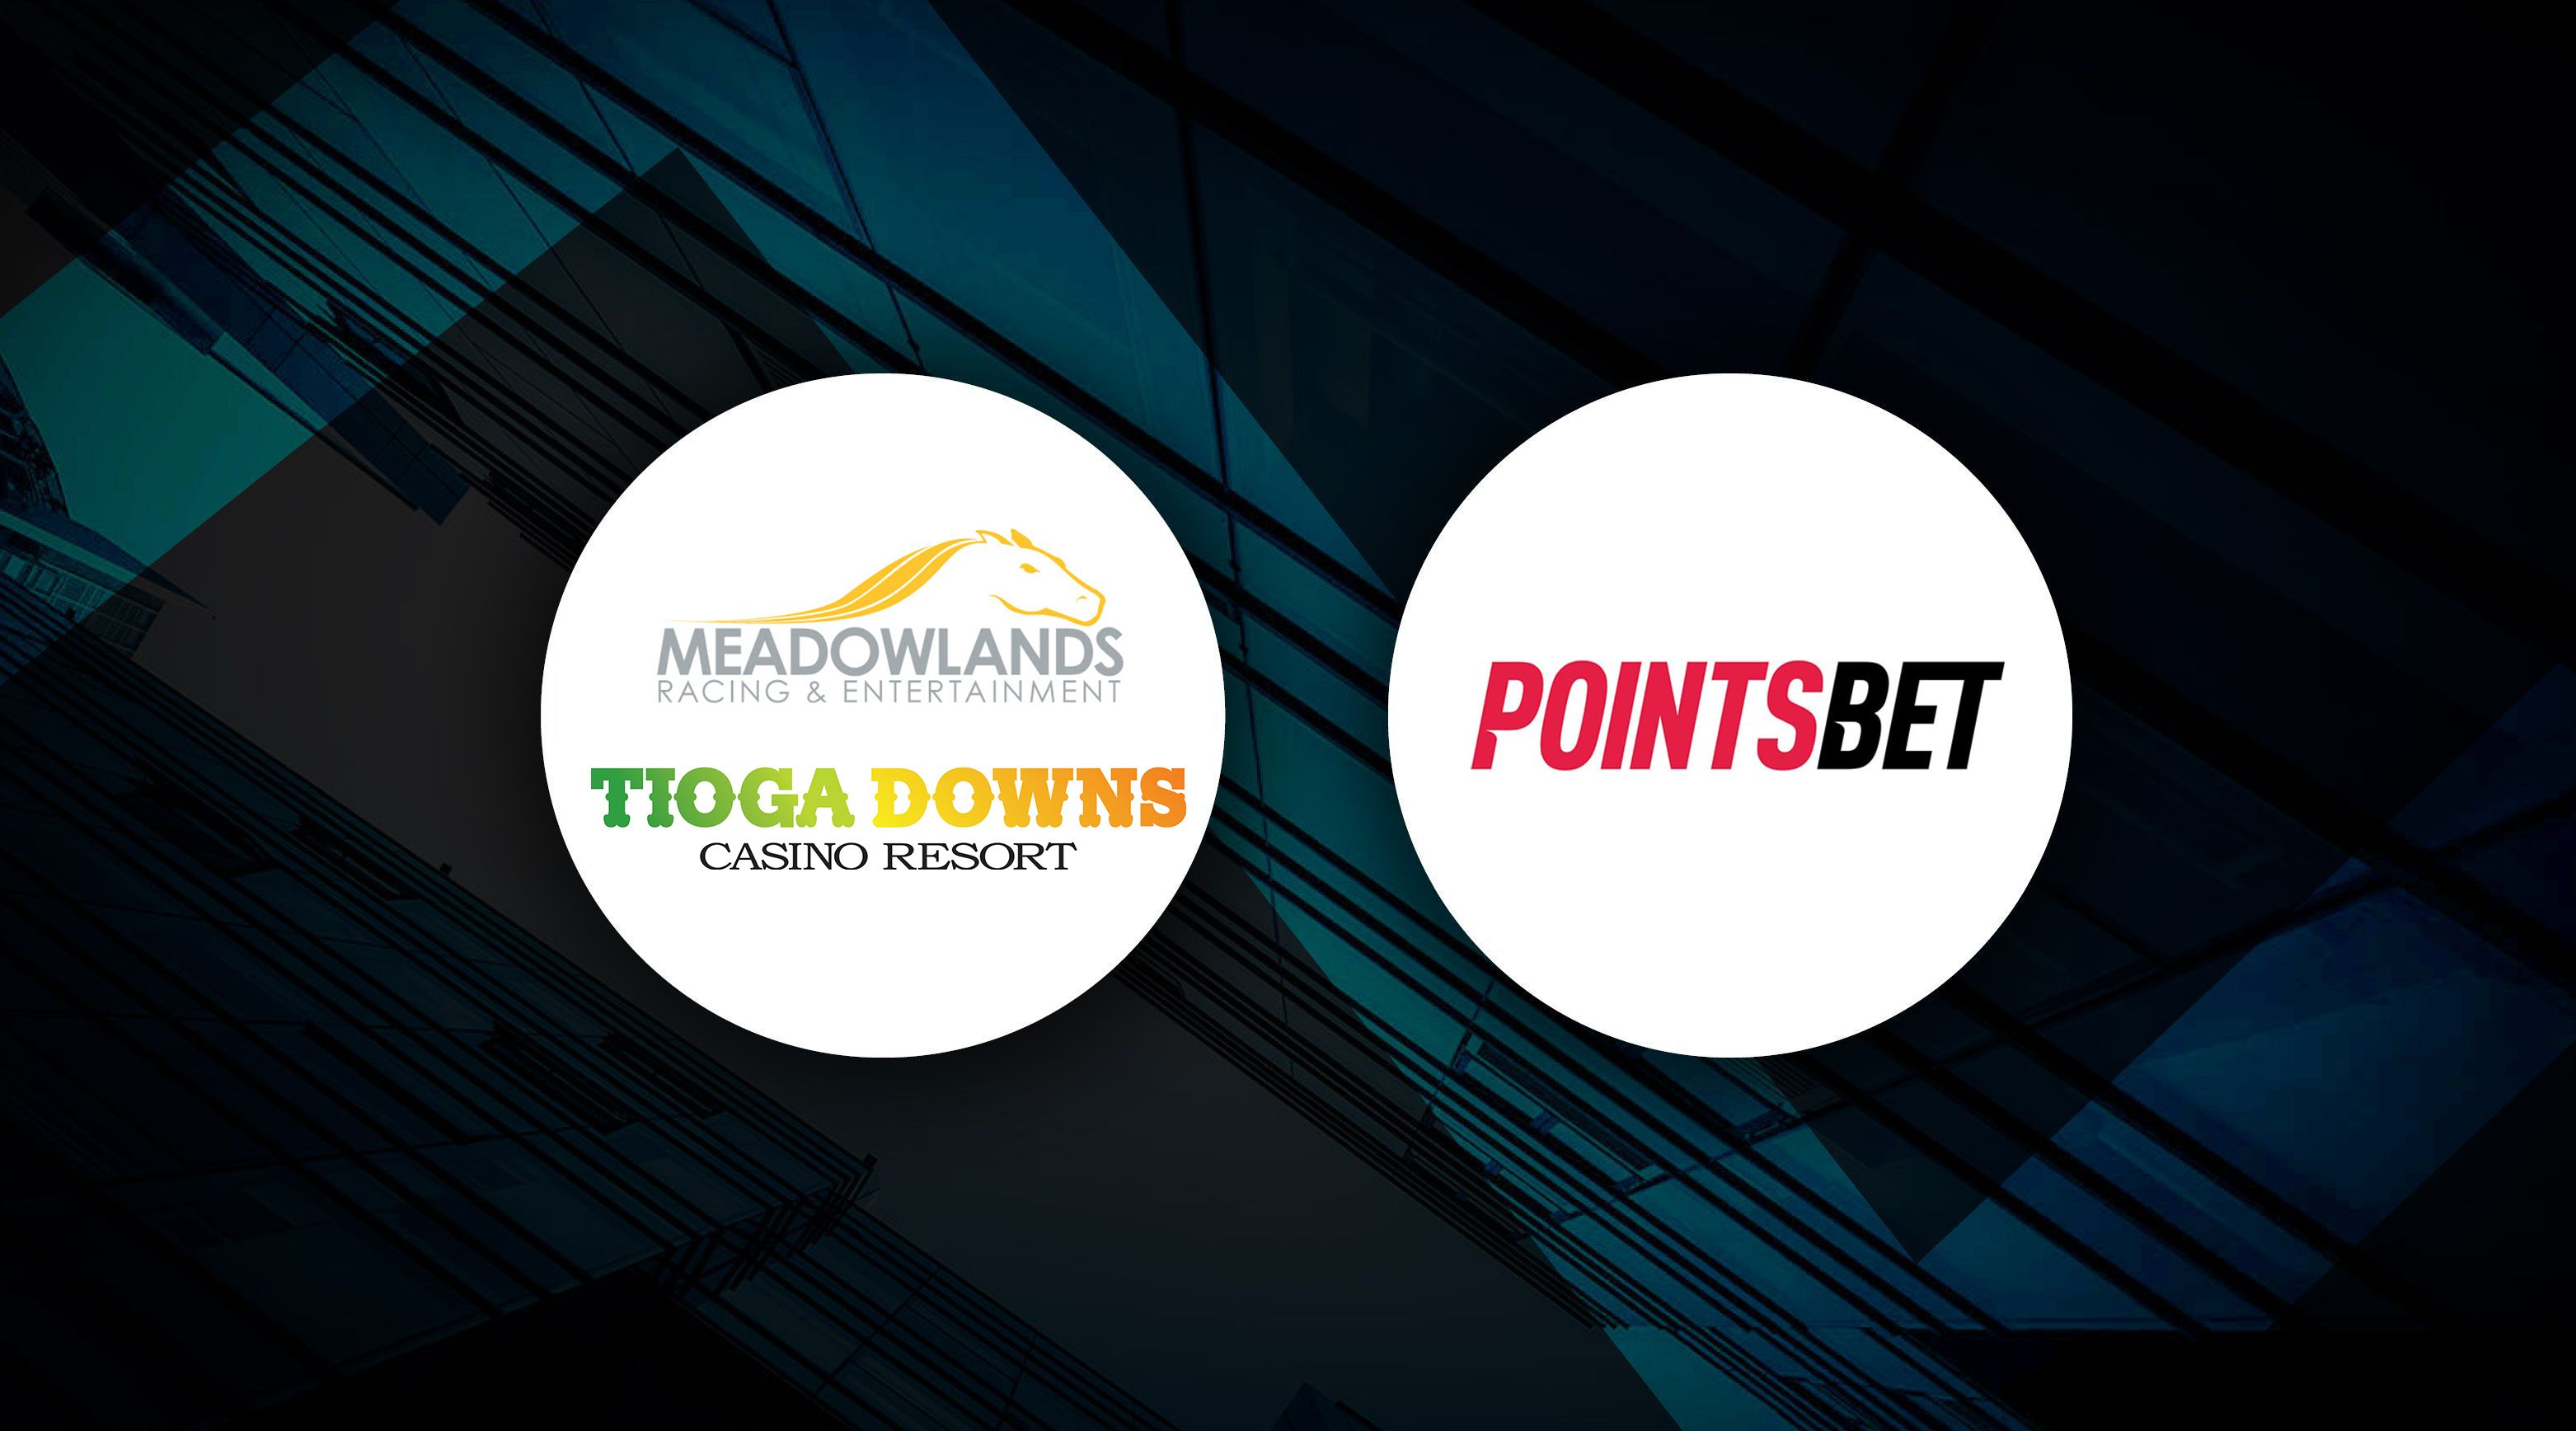 Pointsbet Enters US Sports Betting Market With Meadowlands And Tioga Downs Agreements